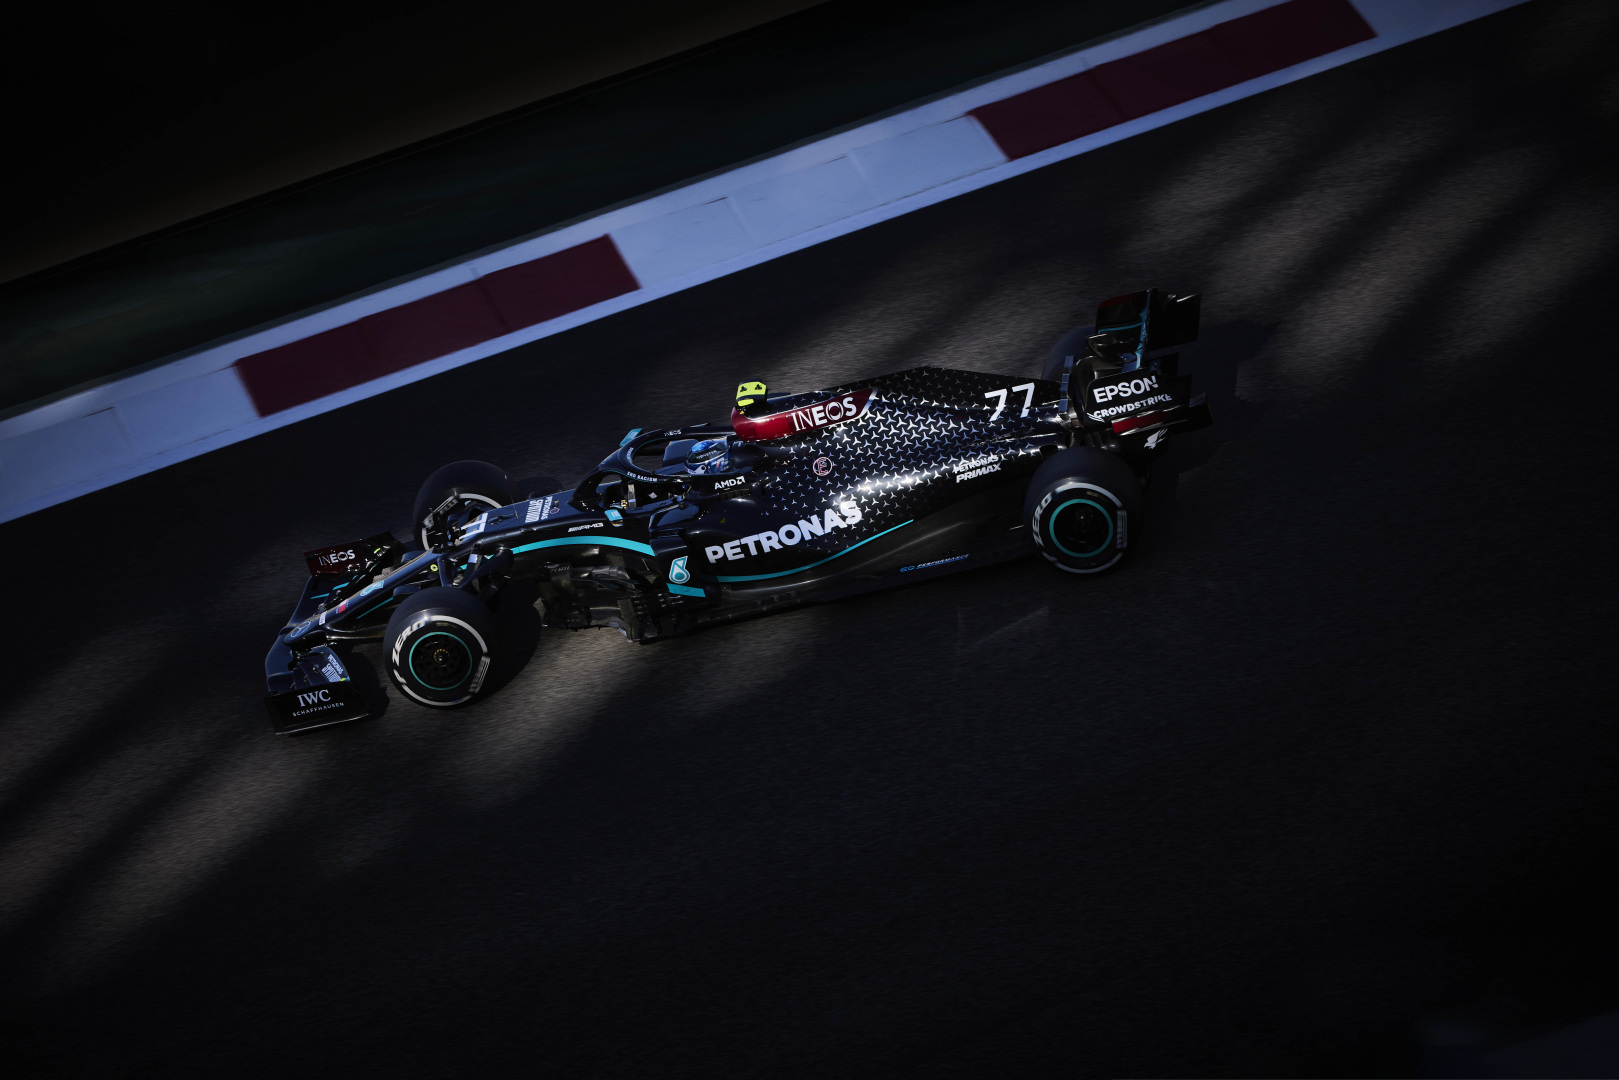 2020 Abu Dhabi Grand Prix, Friday - Steve Etherington